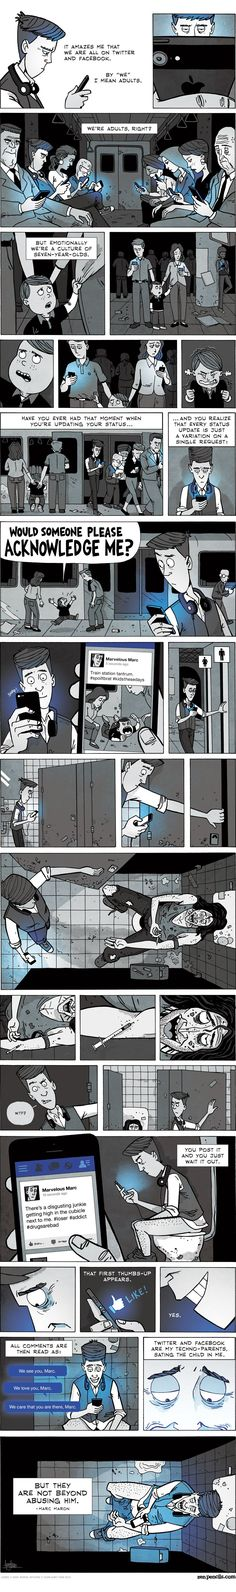 Every Social Media User Must Read This Little Comic. And I Mean EVERYONE!